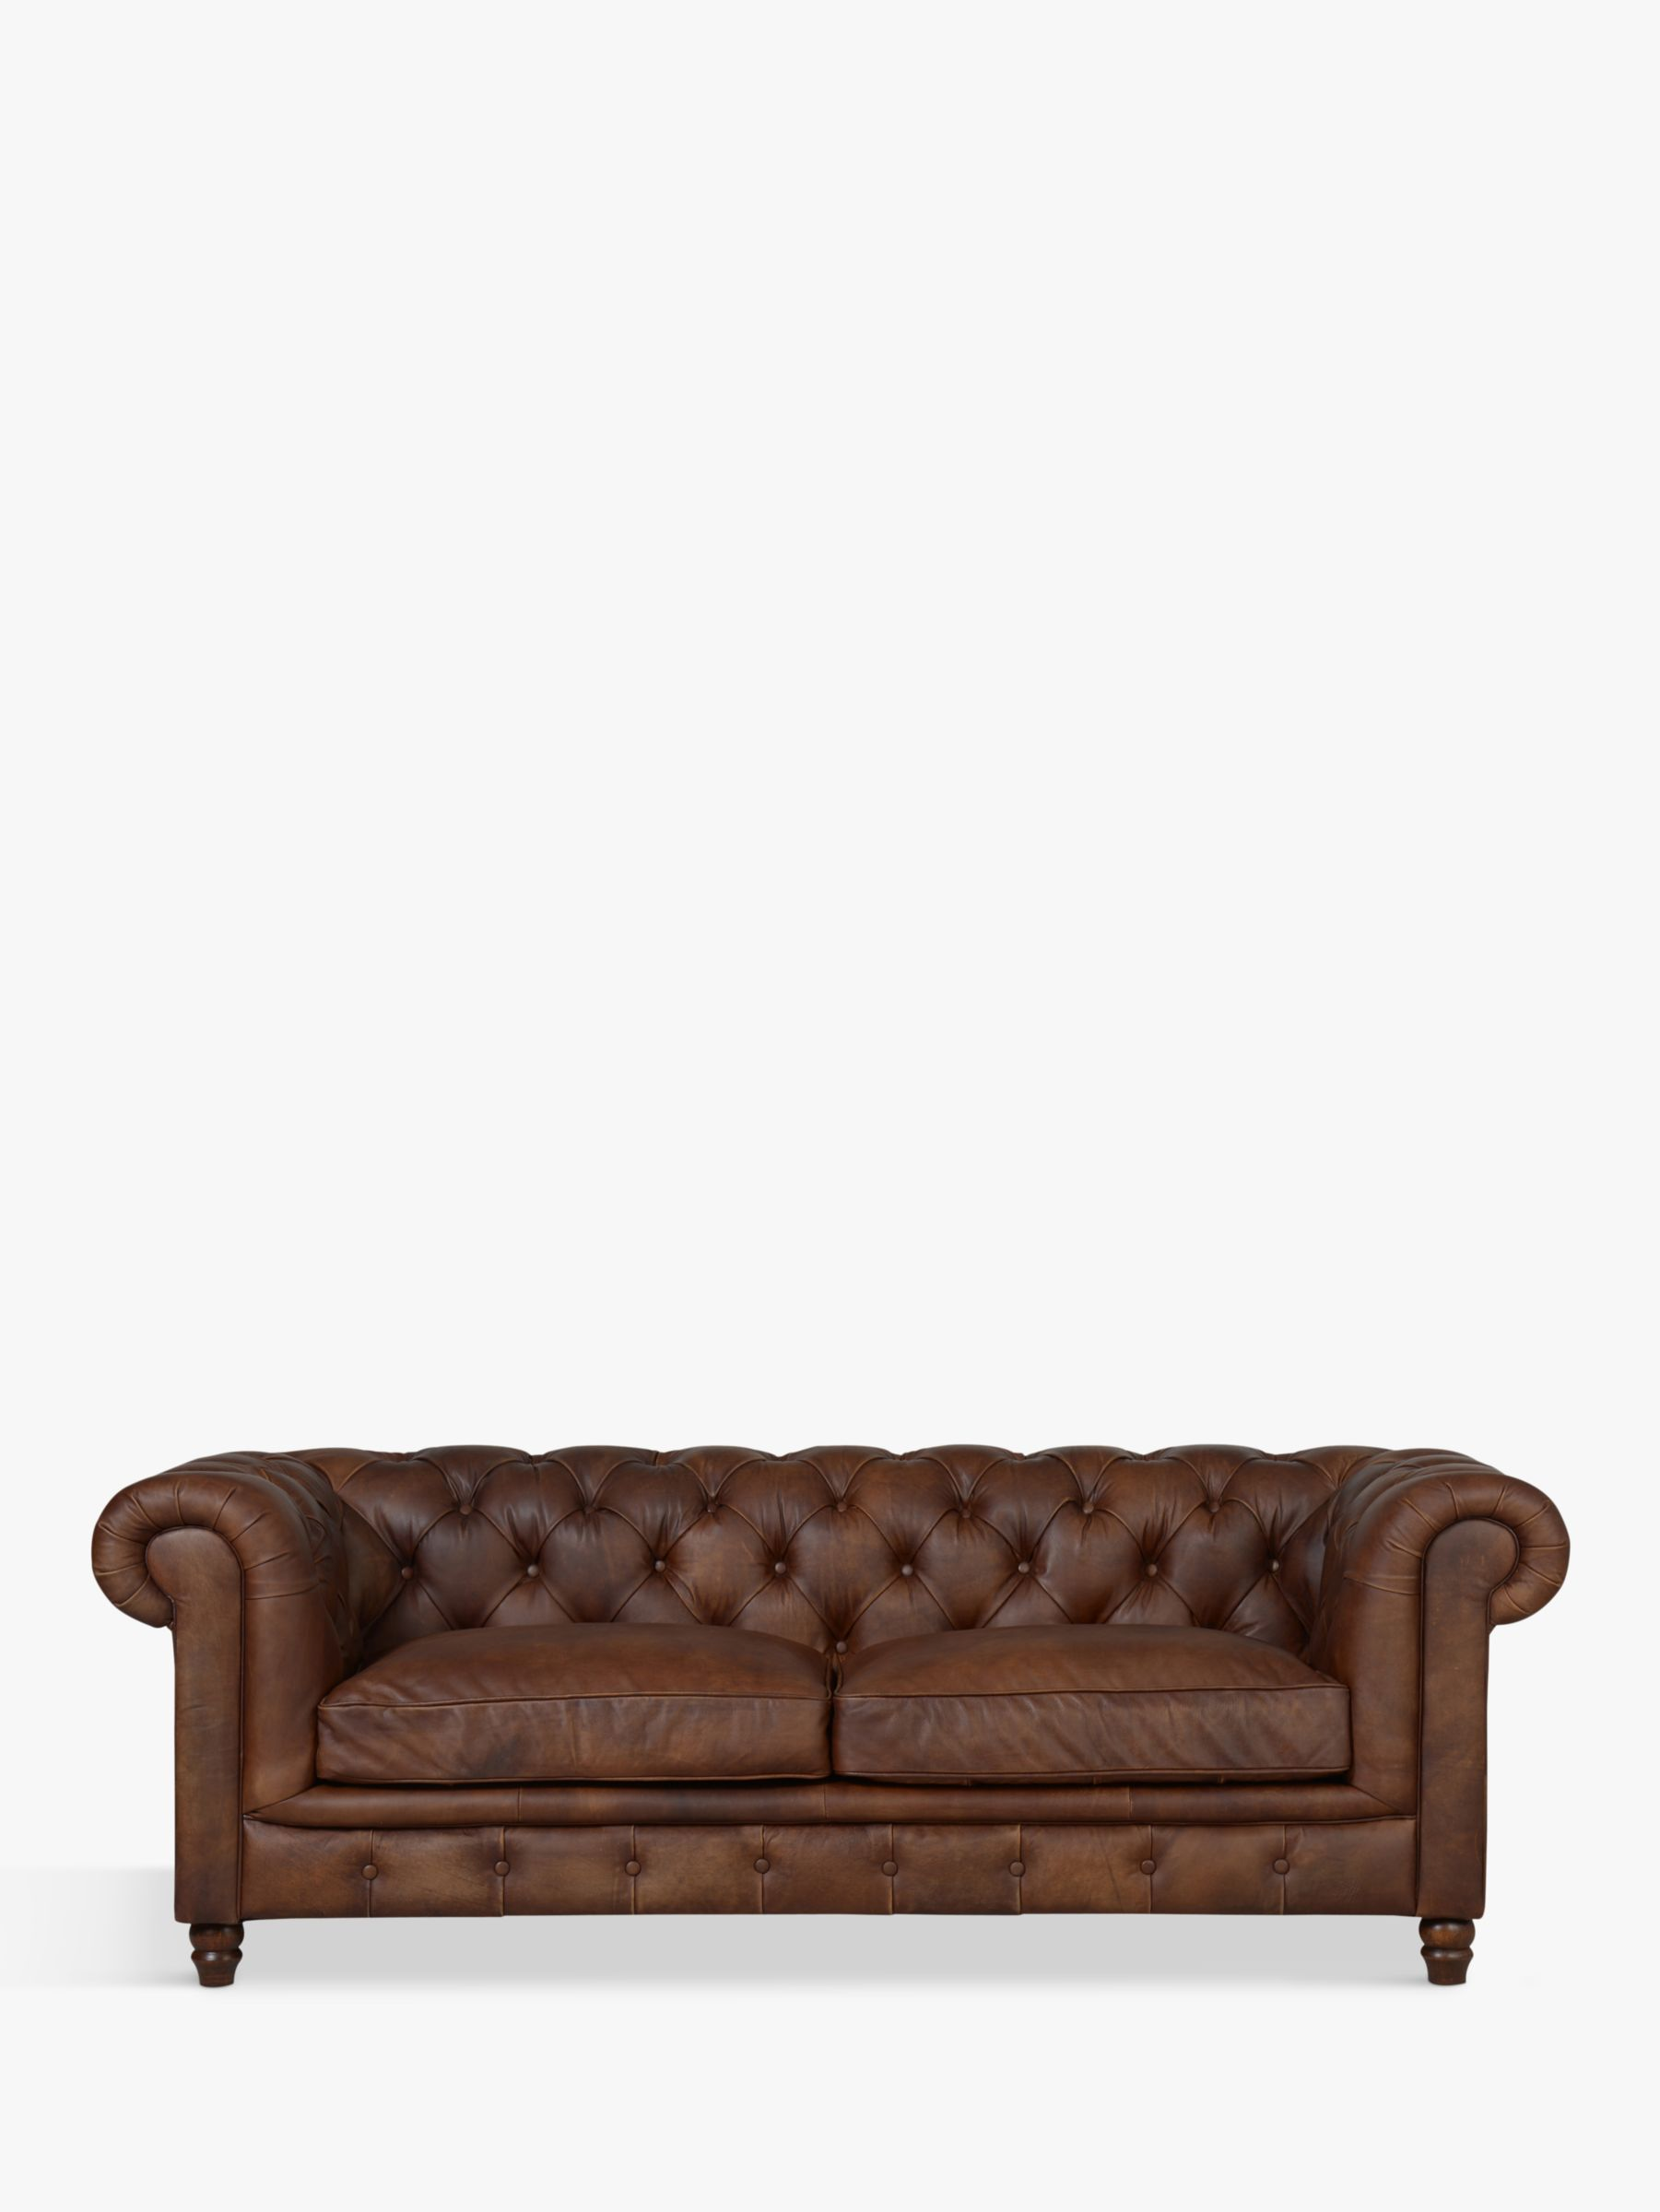 Halo Halo Earle Aniline Leather Chesterfield Large Sofa, Antique Whisky